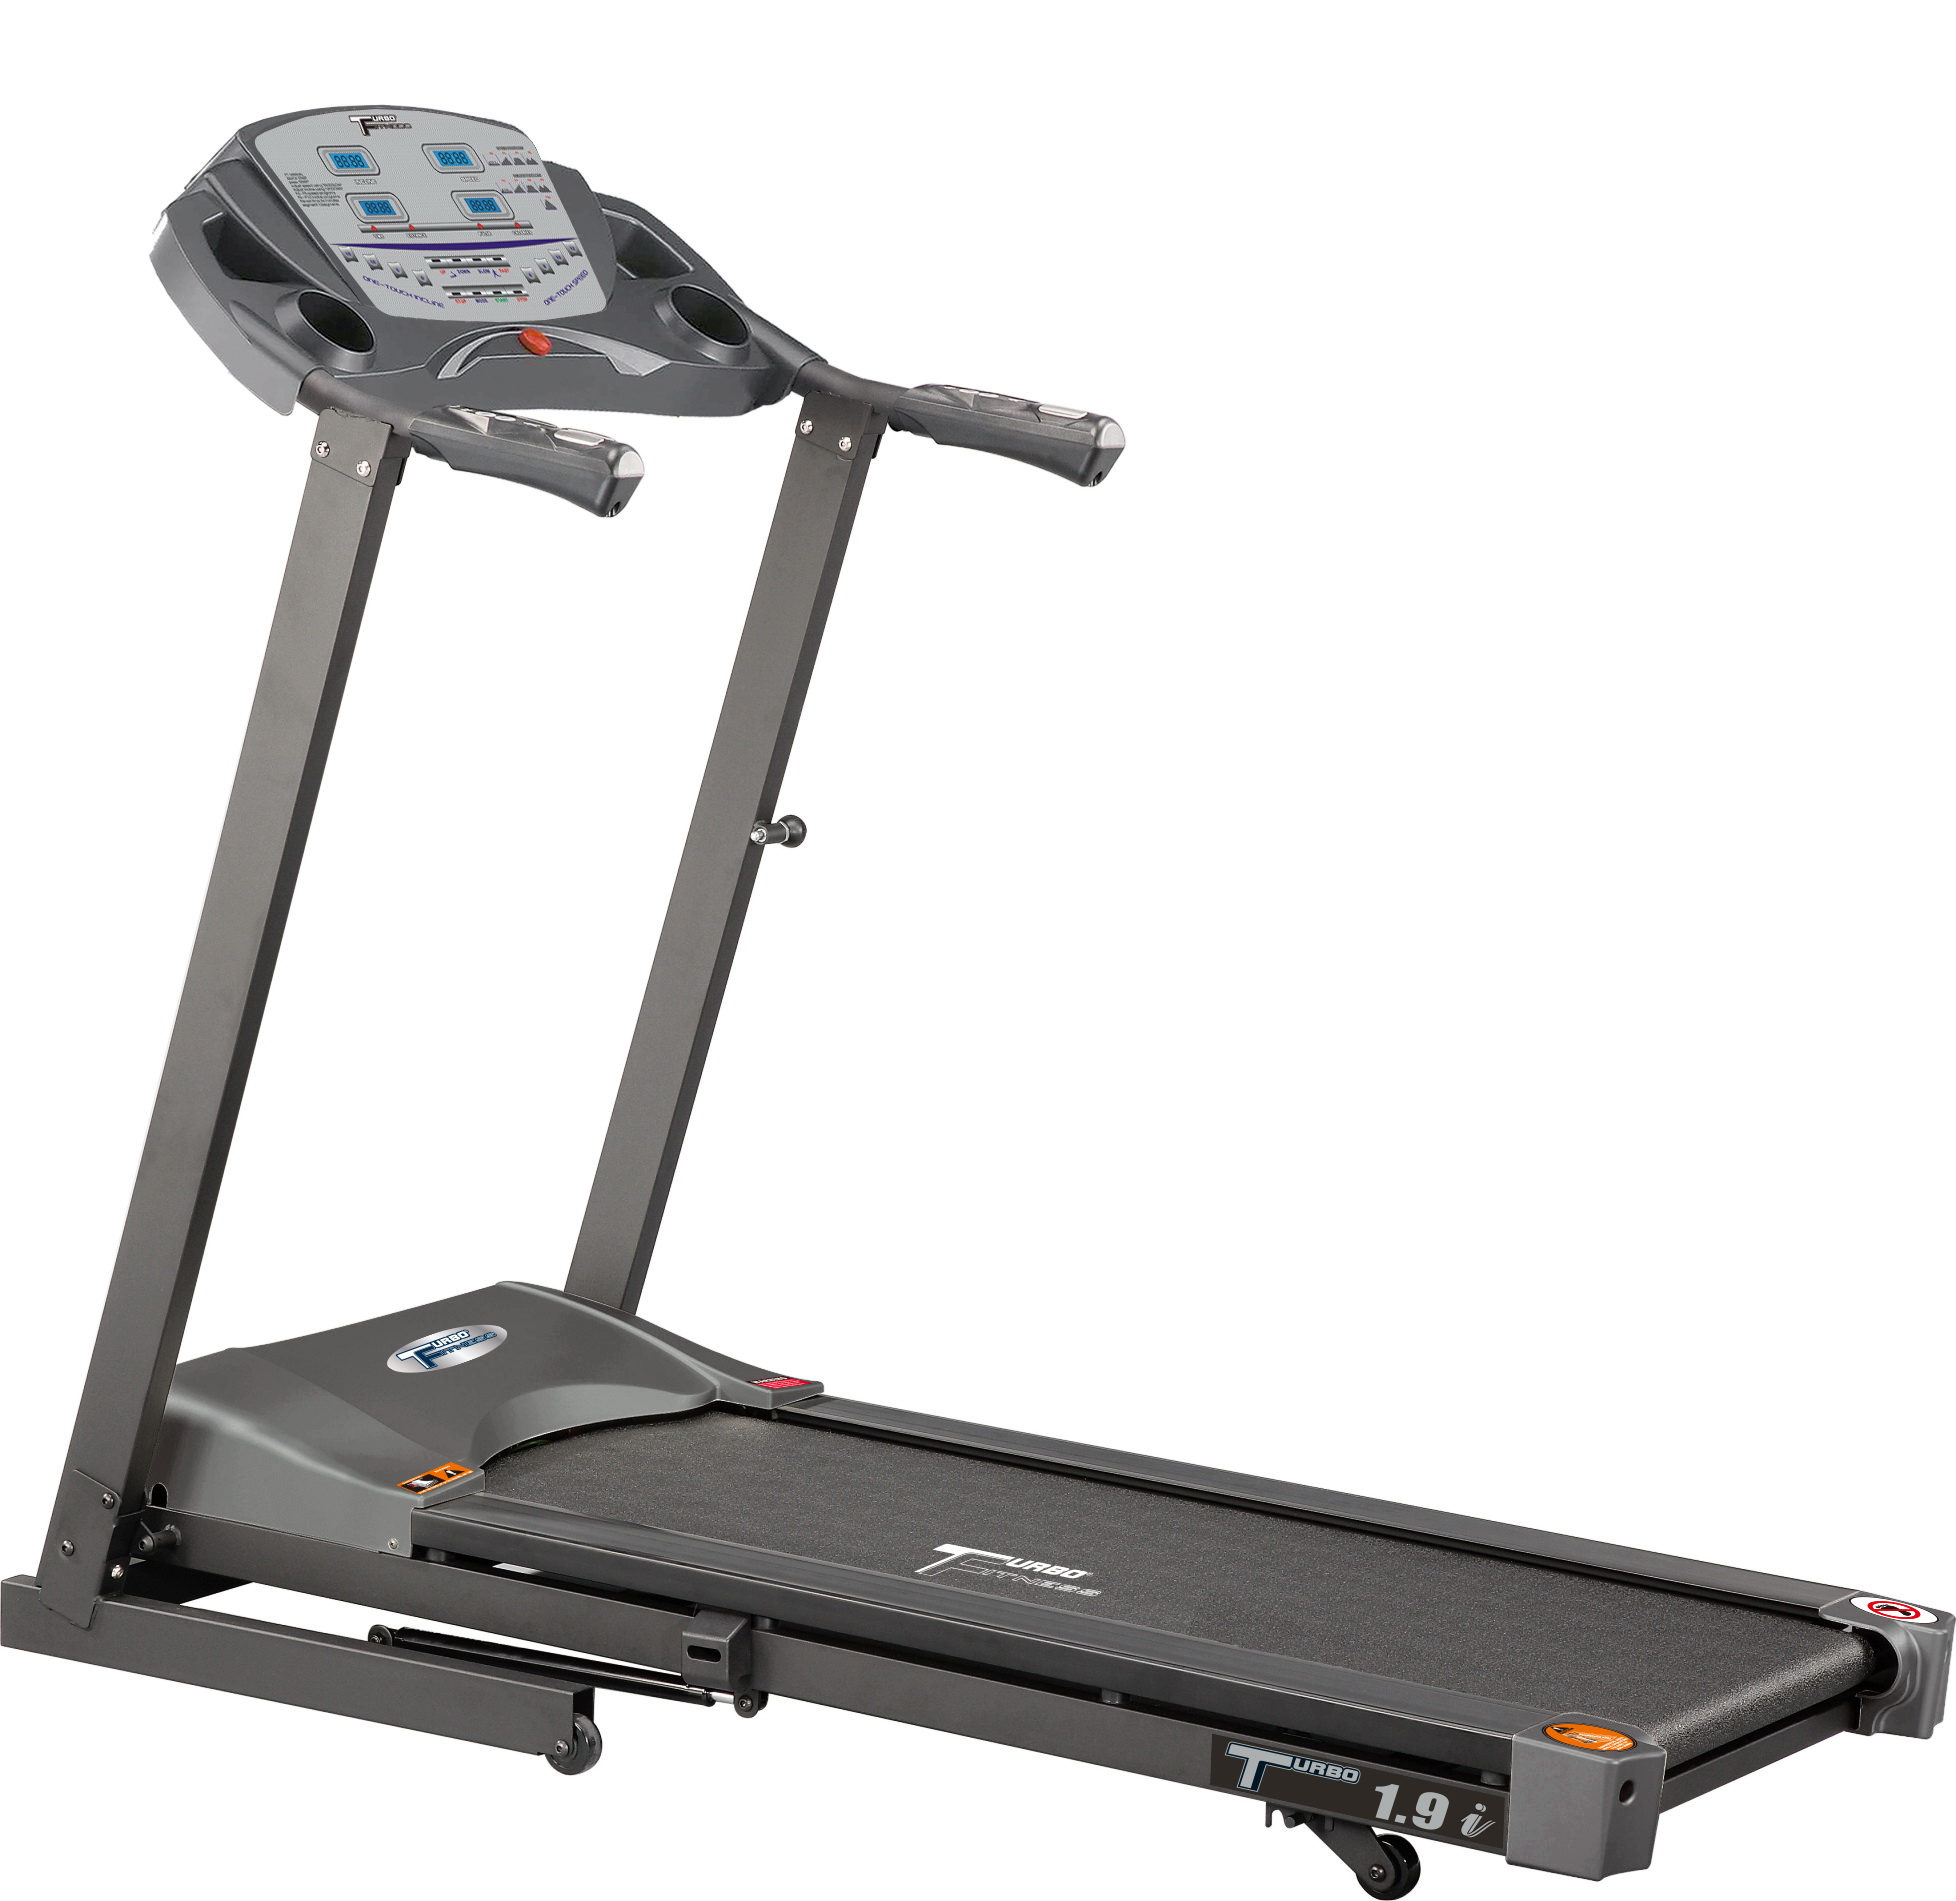 Turbo Fitness T1.9i treadmill with power elevation